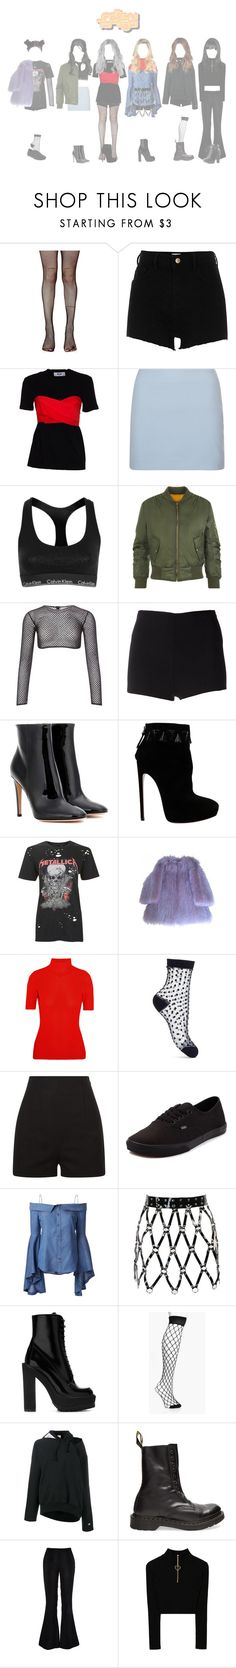 """┇ SEXY ┇ MUSIC CORE - COME OUT"" by dreamcatcher-official ❤ liked on Polyvore featuring Leg Avenue, River Island, MSGM, Calvin Klein, WearAll, PA5H, Martin Grant, Gianvito Rossi, Alaïa and Topshop"